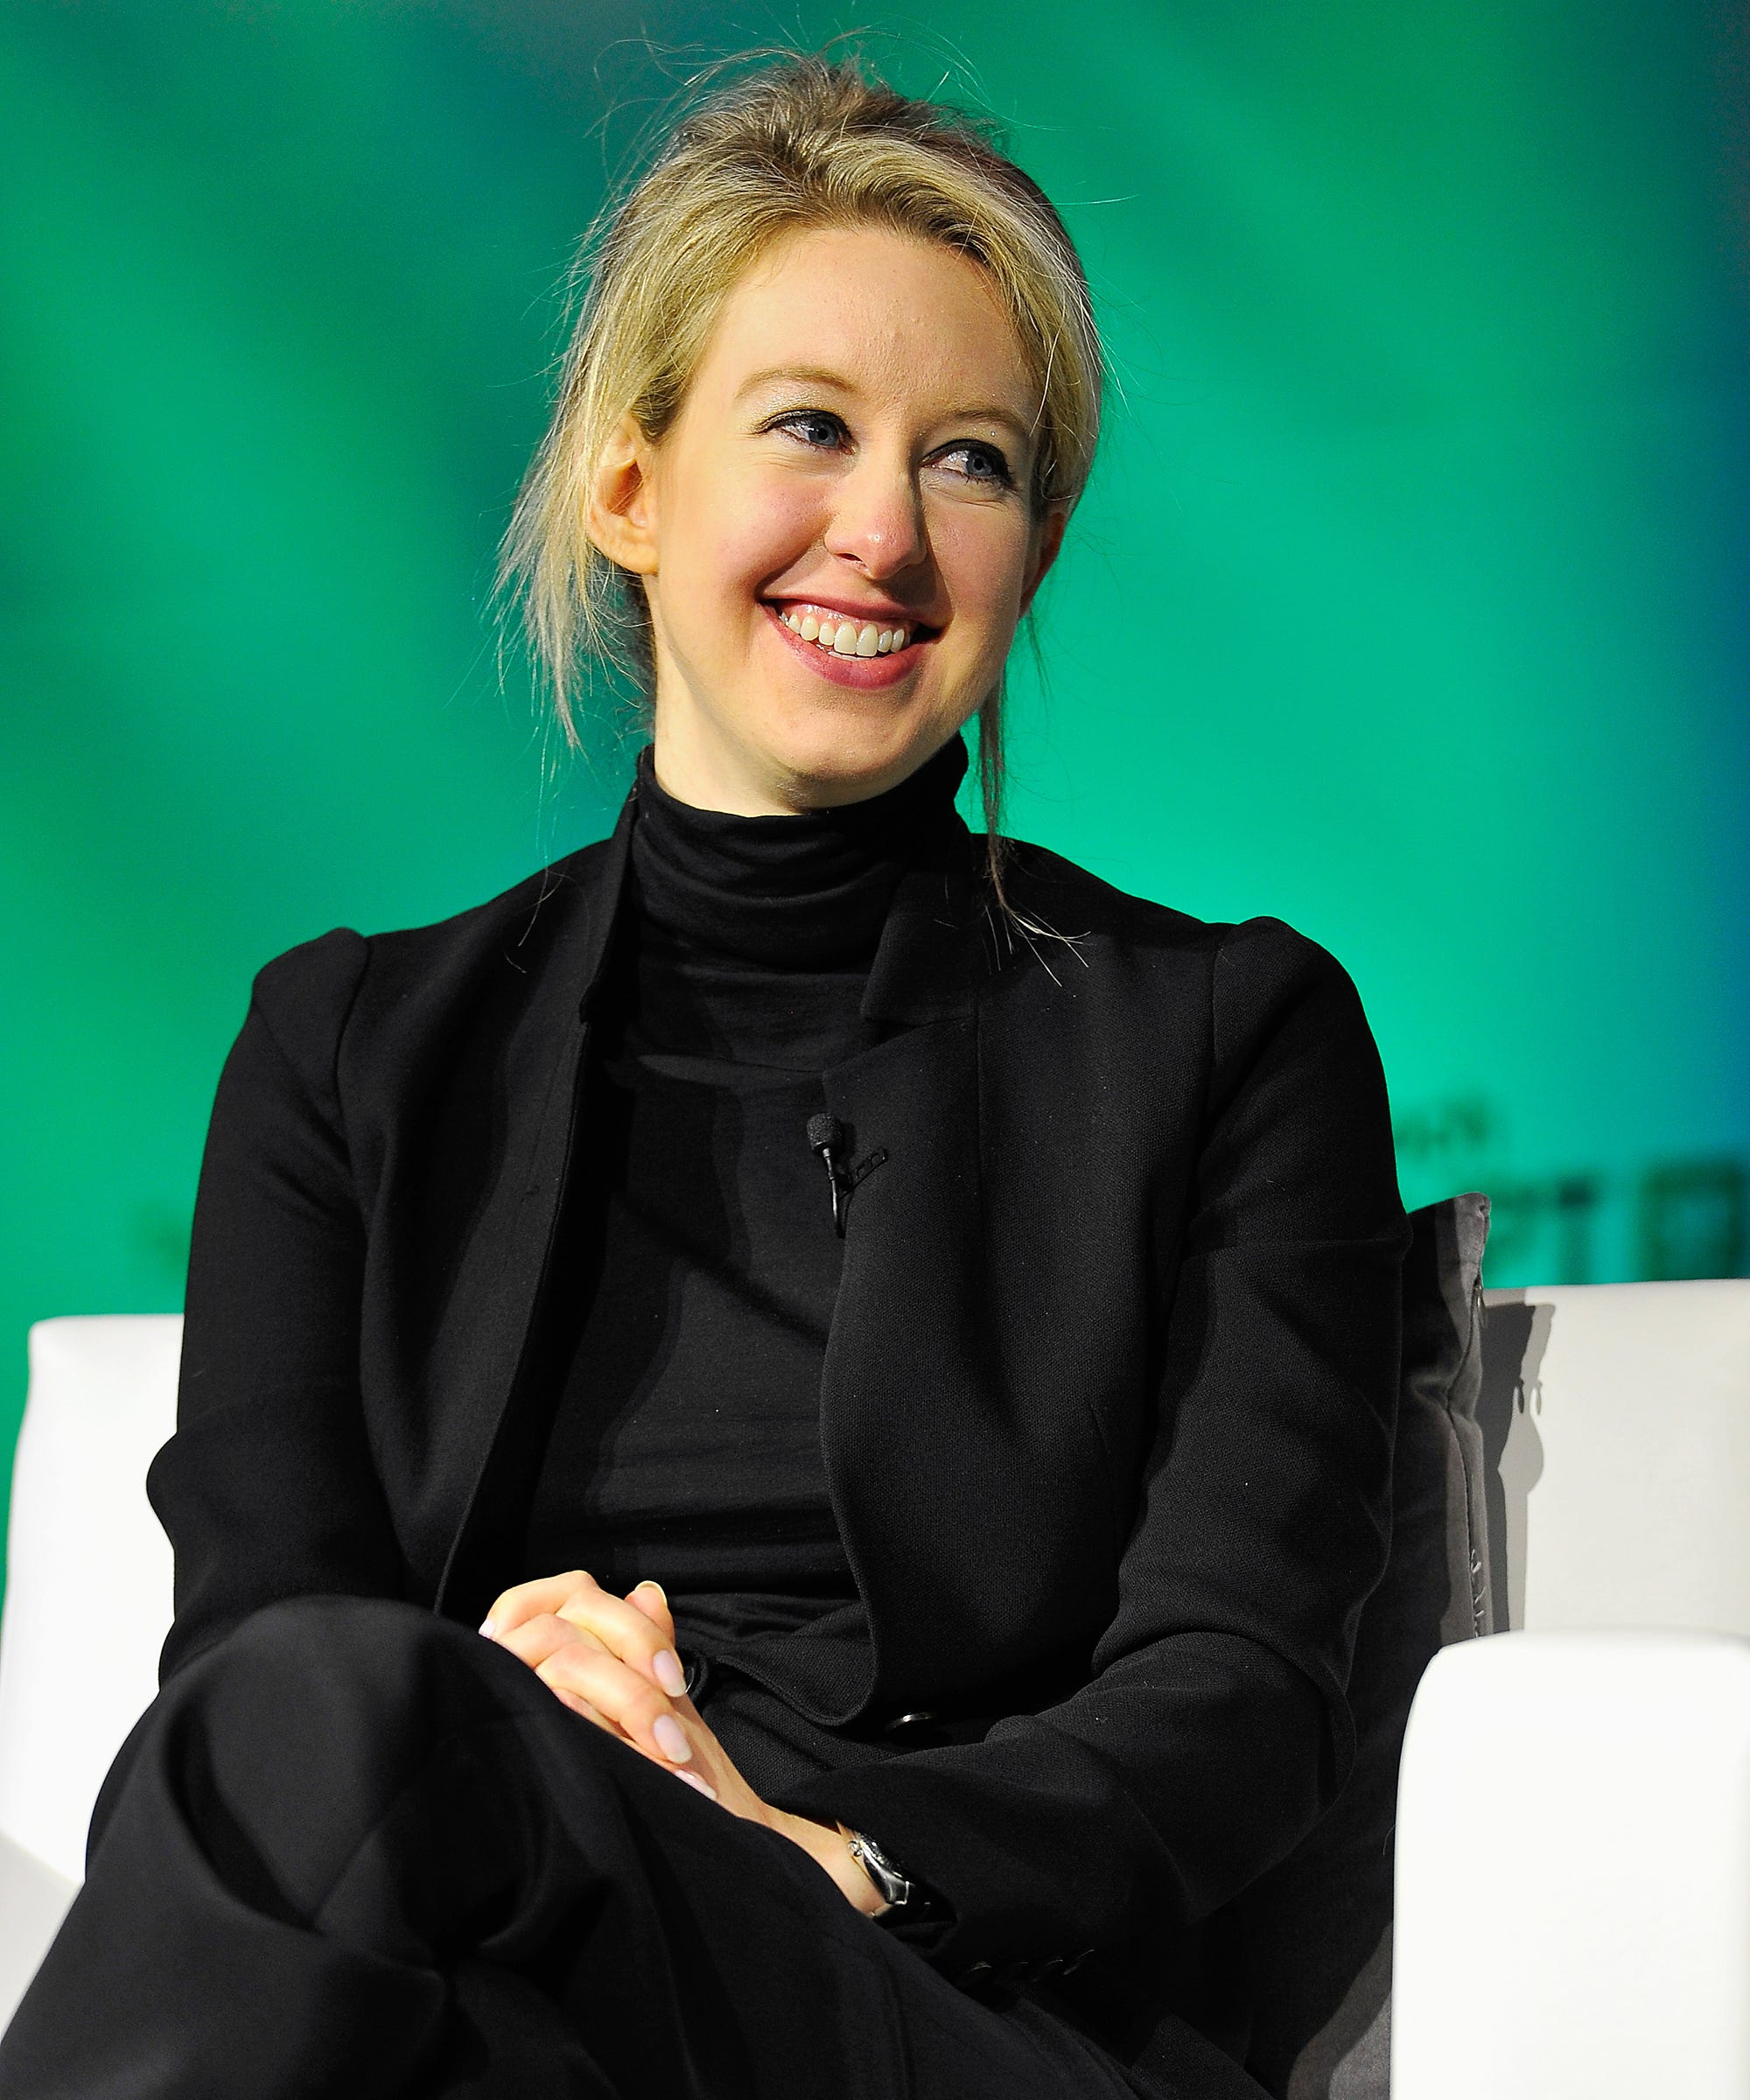 Watching Theranos Ads Now Is A Very Strange Experience